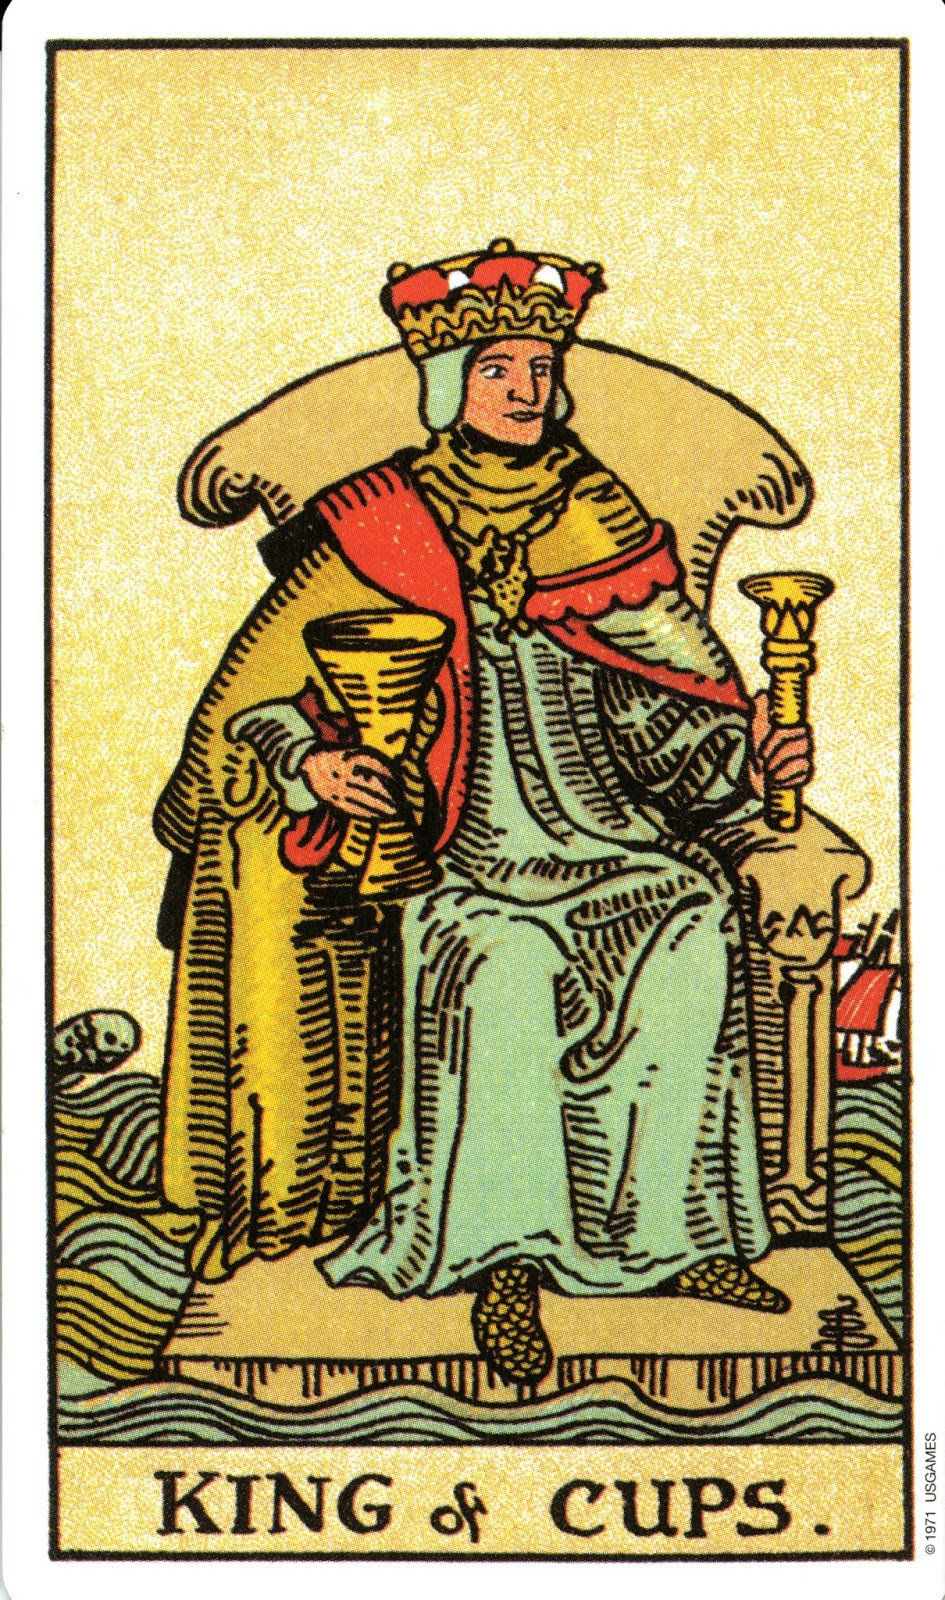 King of Cups